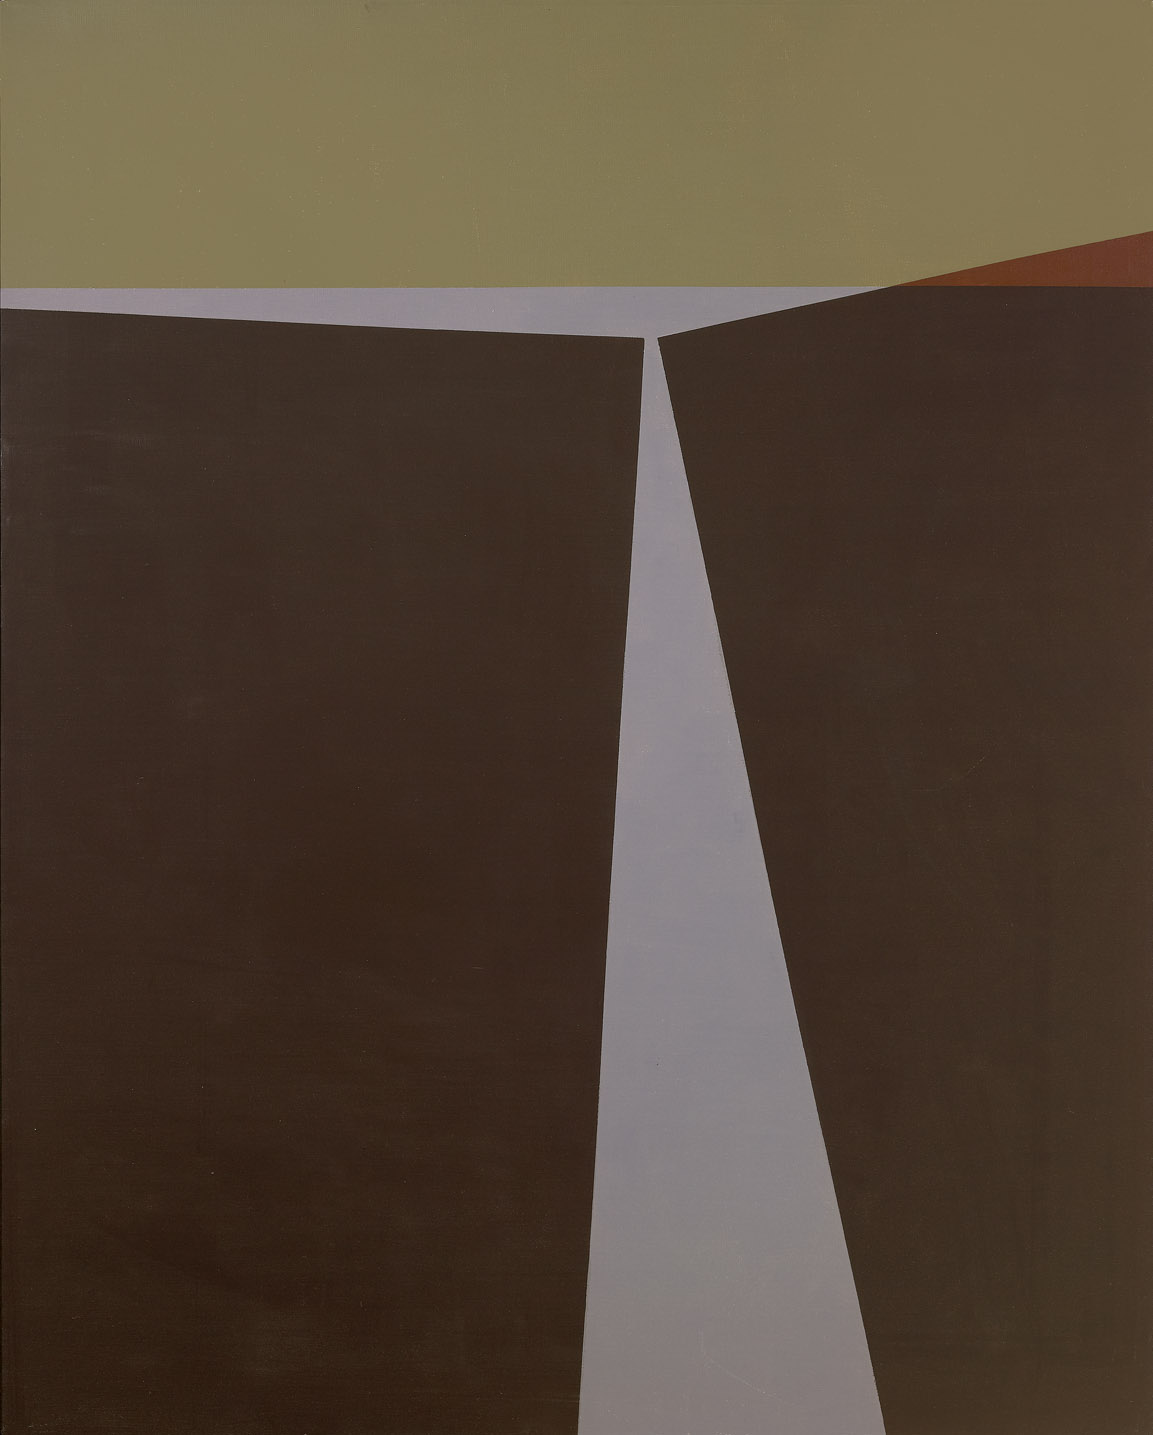 Cimmerian Landscape , 1960  oil on canvas 36 x 20 inches; 91.4 x 50.8 centimeters